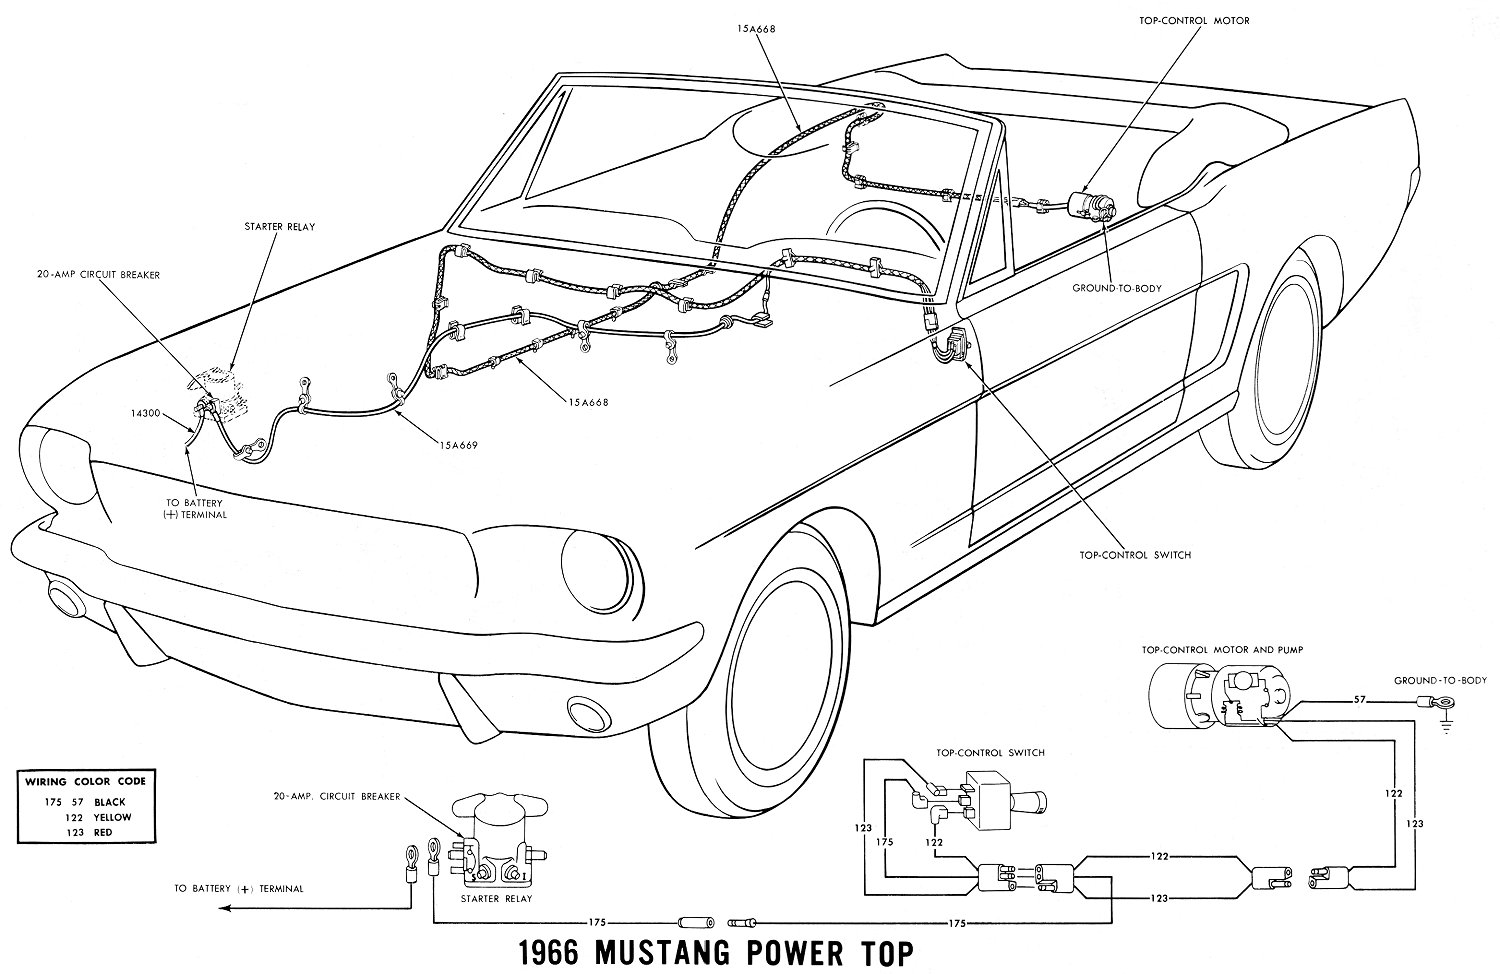 1966 Mustang Alternator Belt Diagram Wiring Schematic Manual E Books 1969 Ford F100 Diagrams Average Joe Restoration1966 17